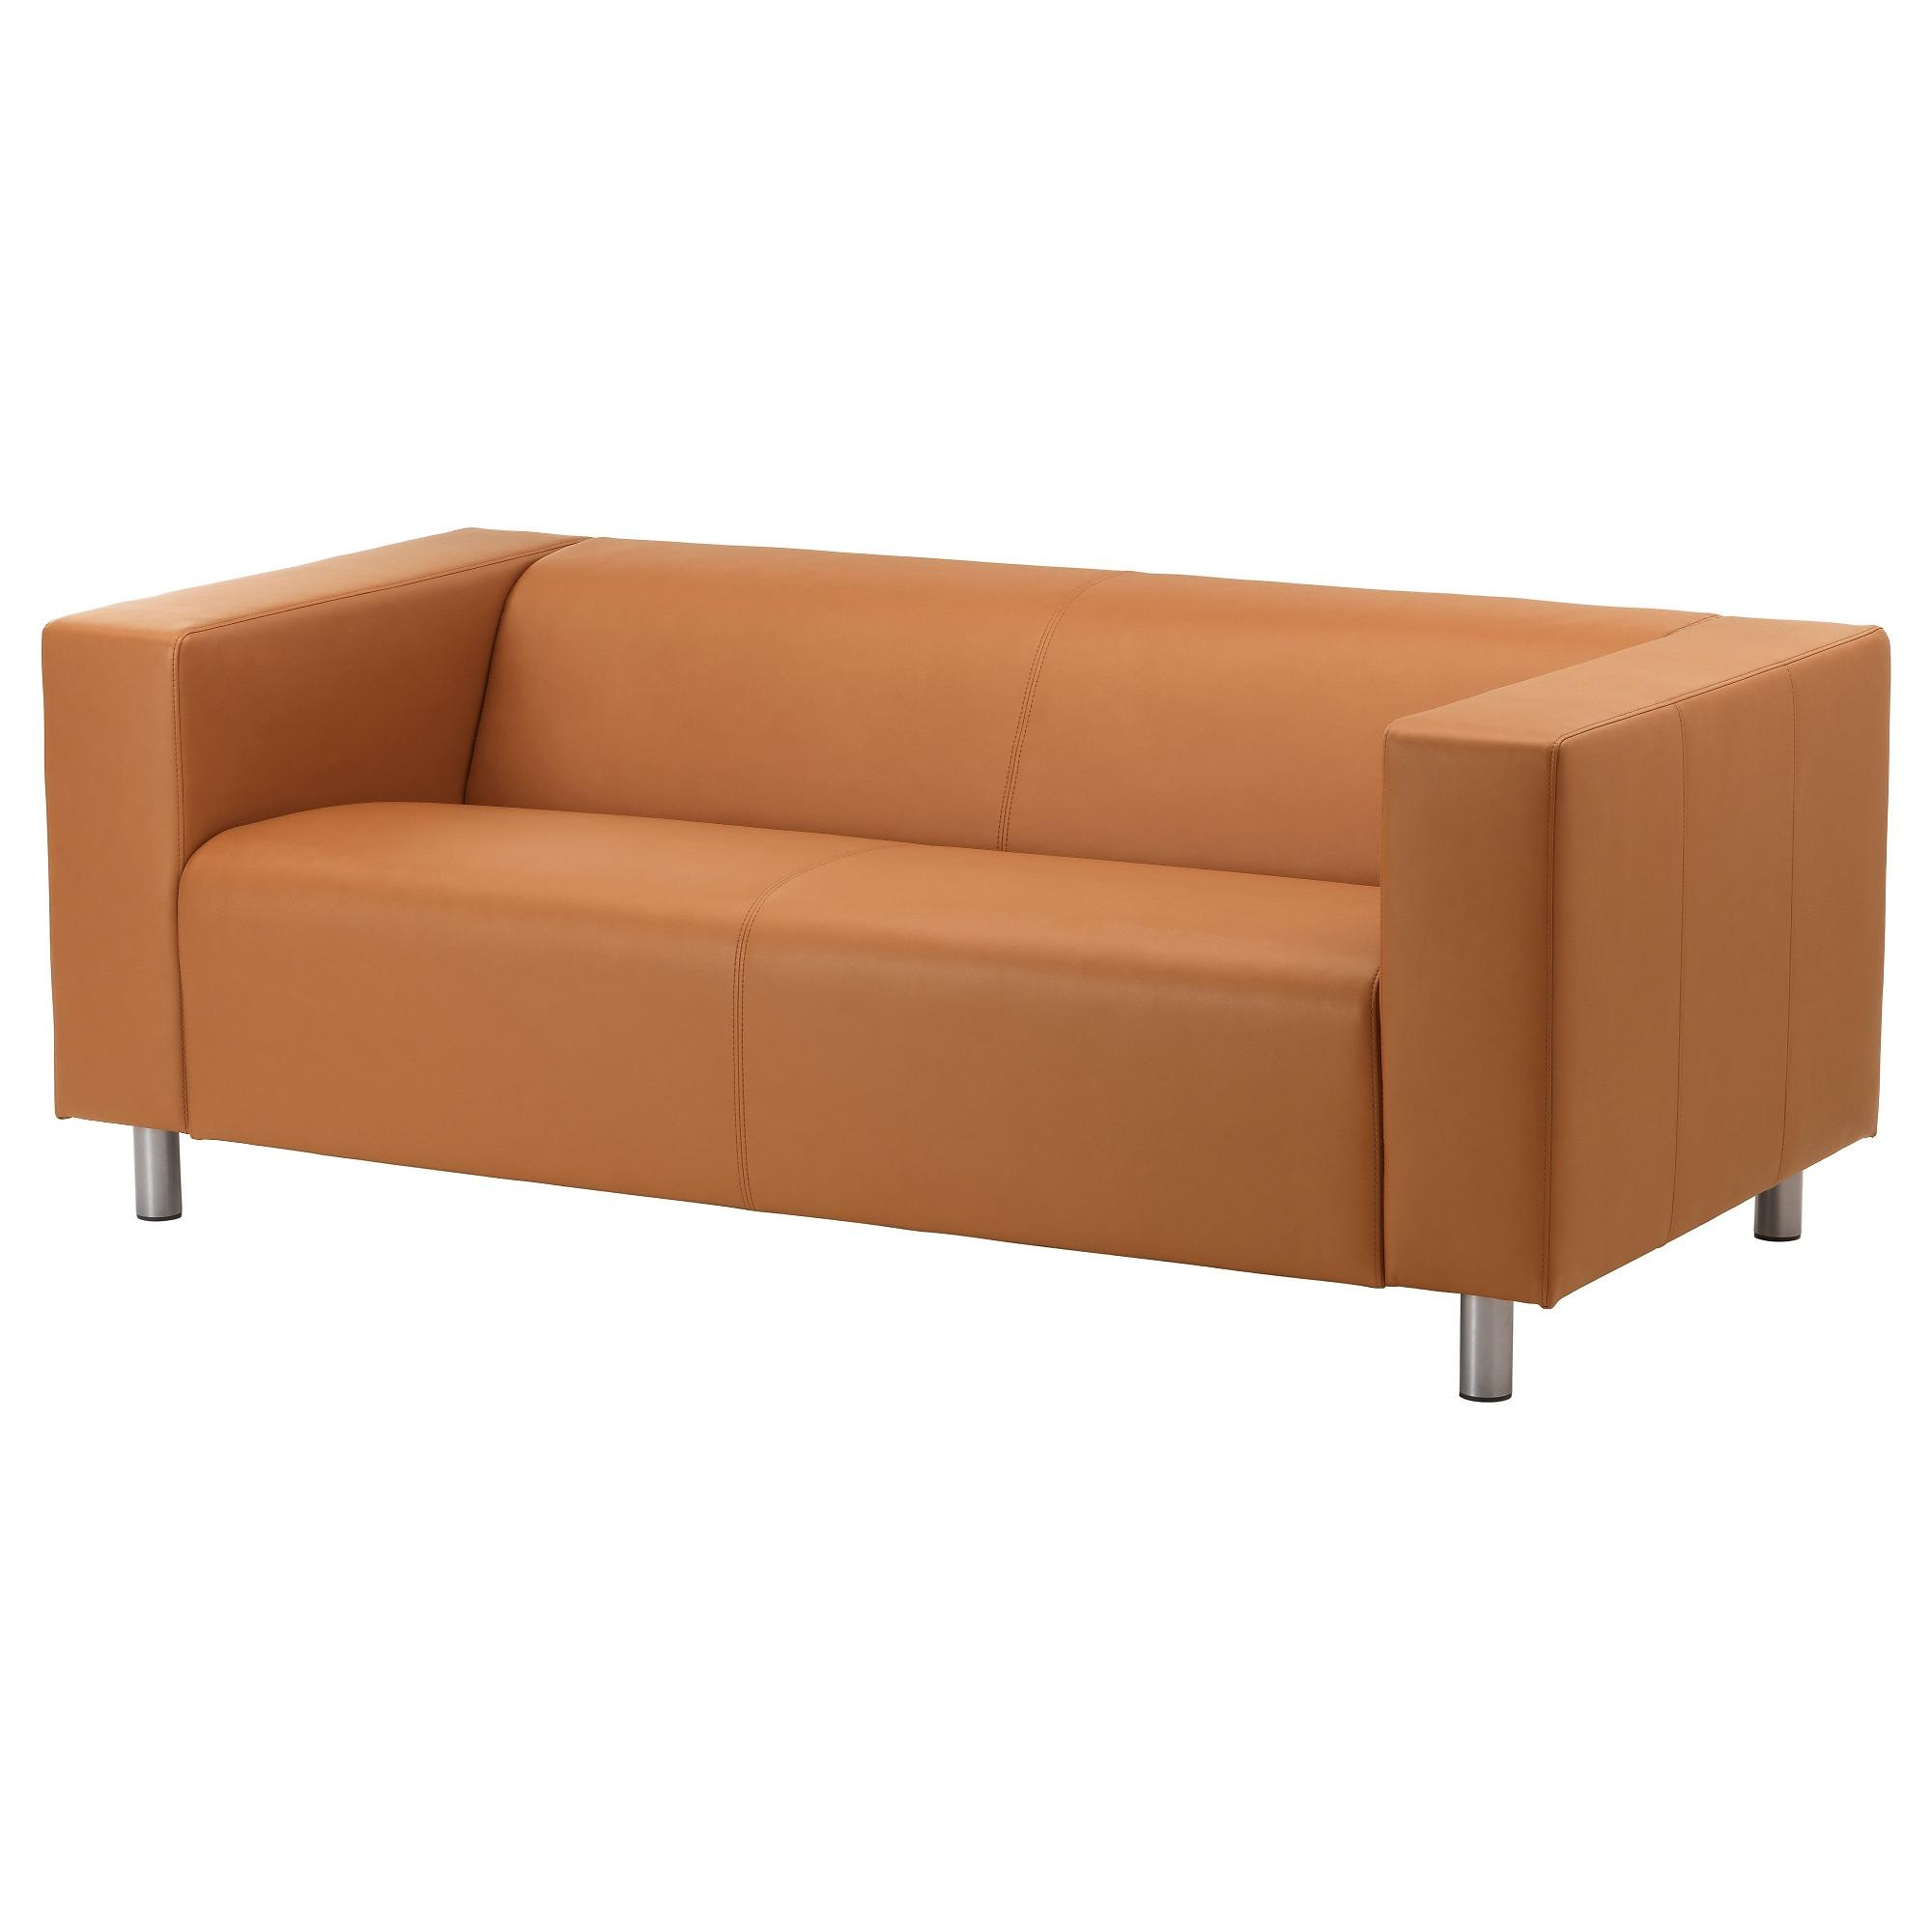 Leather & Faux Leather Couches, Chairs & Ottomans – Ikea With Regard To Light Tan Leather Sofas (View 10 of 20)